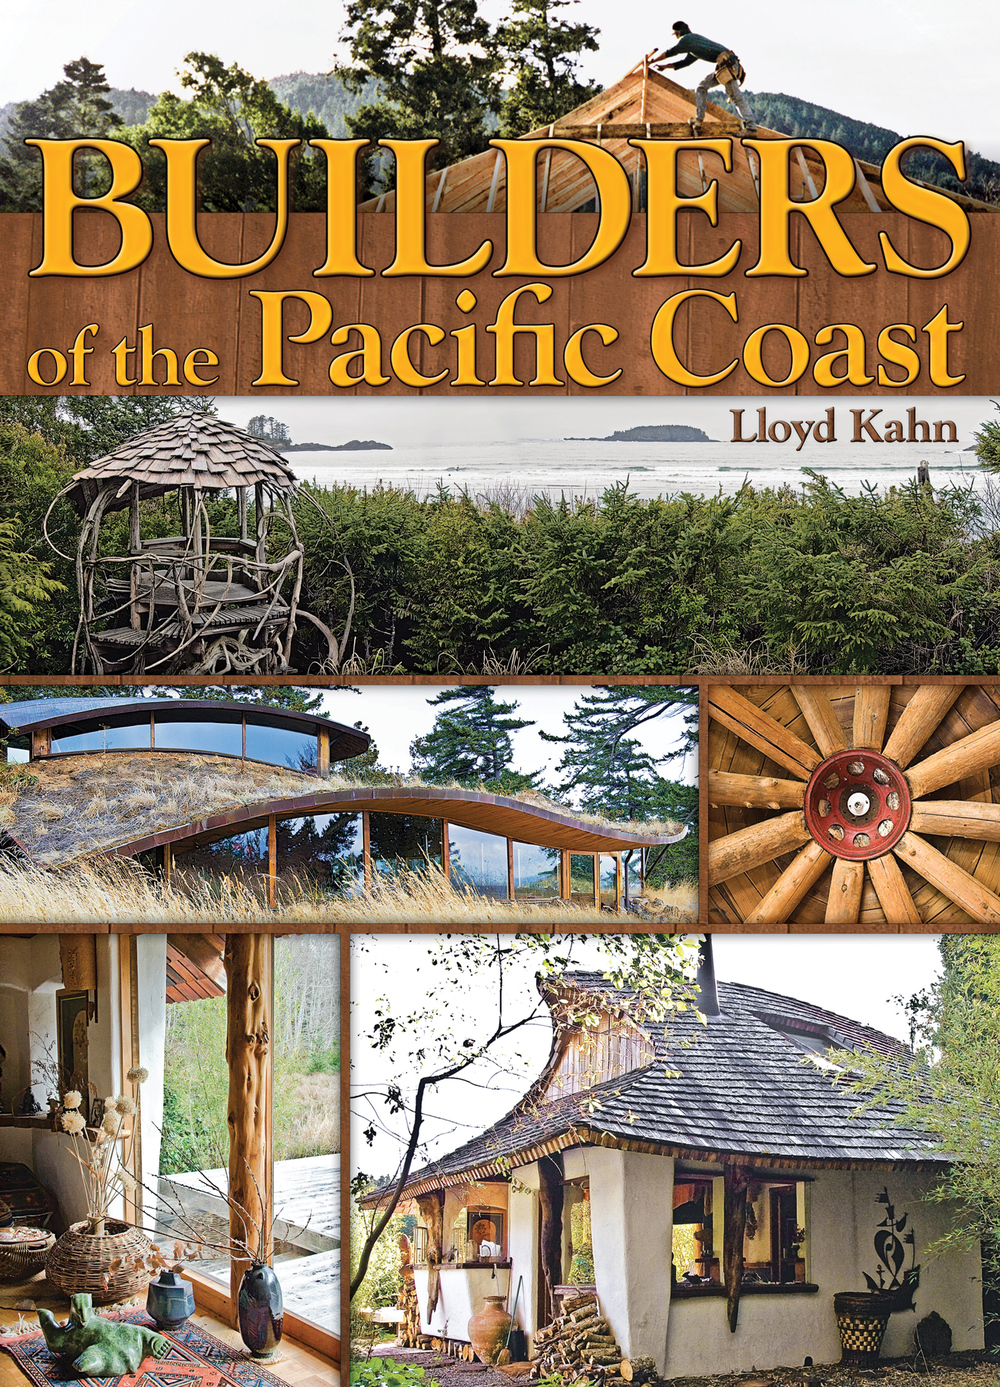 Photos and interviews with builders from San Francisco up the coast to Vancouver Island, BC.